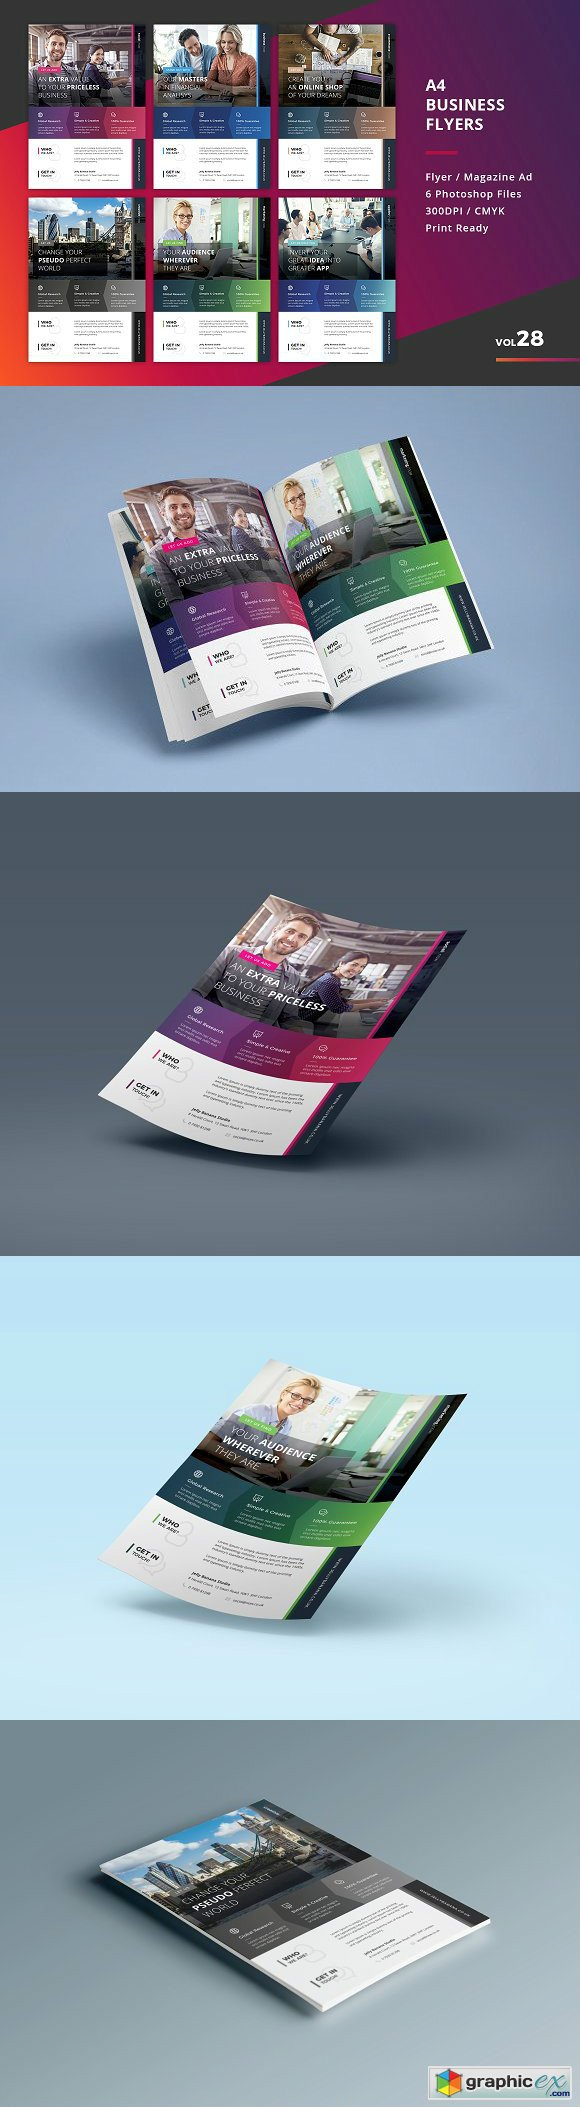 Corporate Flyer Templates 6PSD - 28